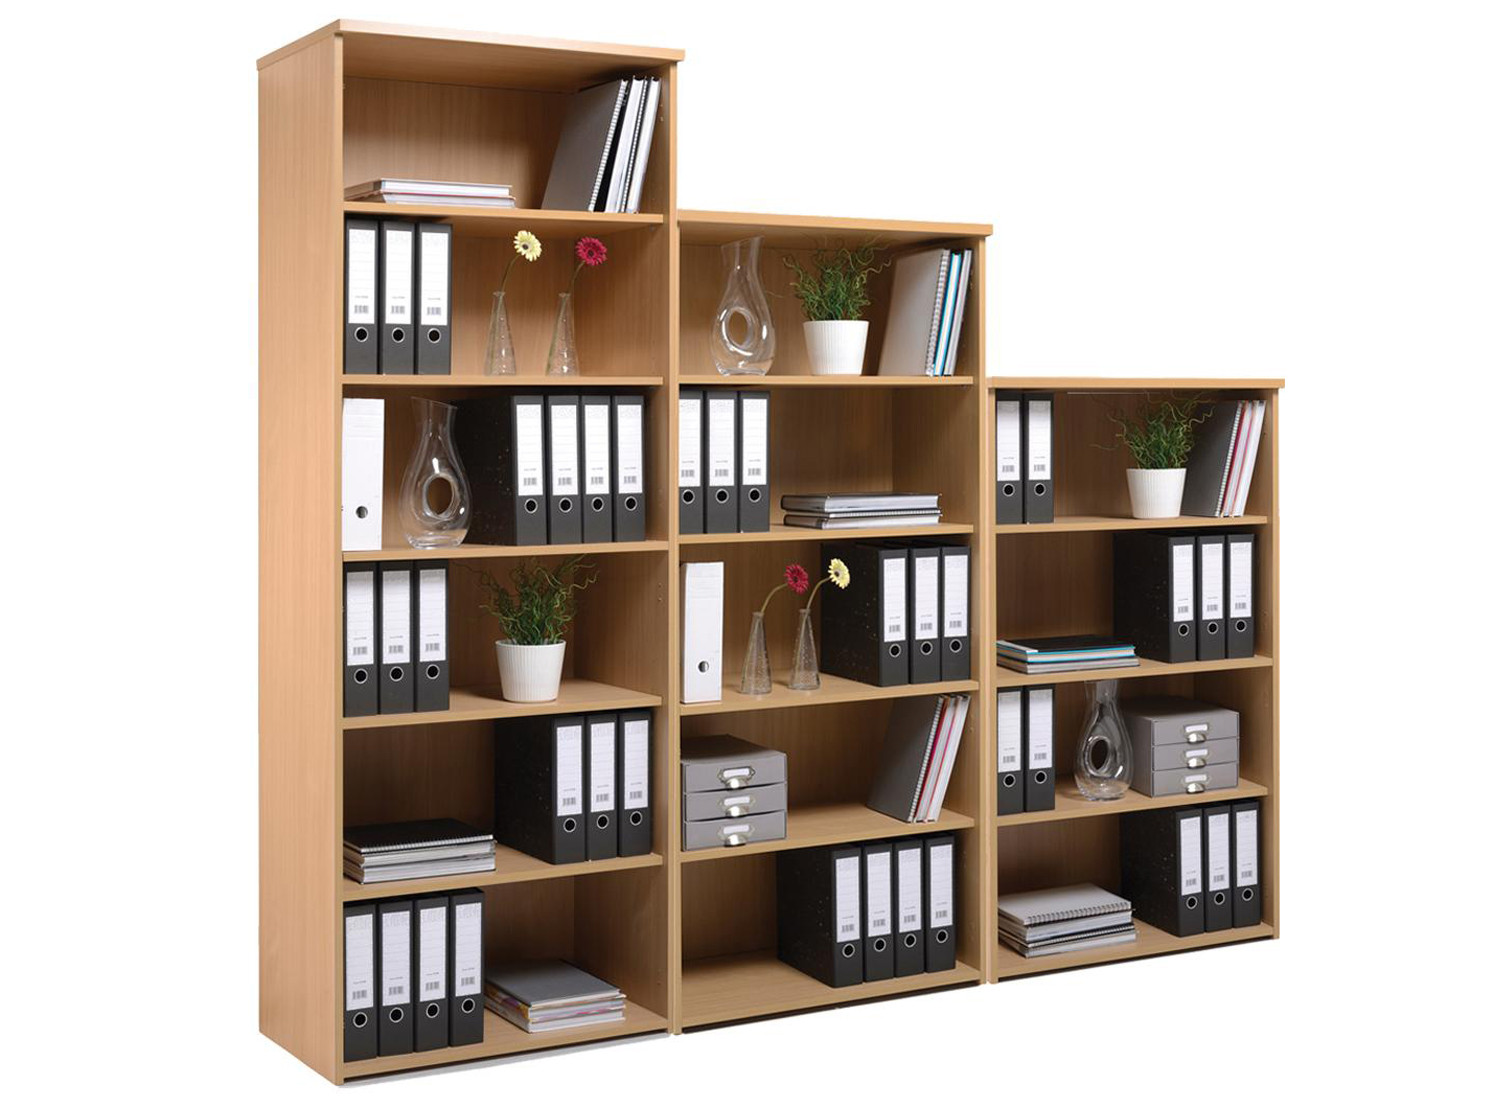 Bookcases furniture at work